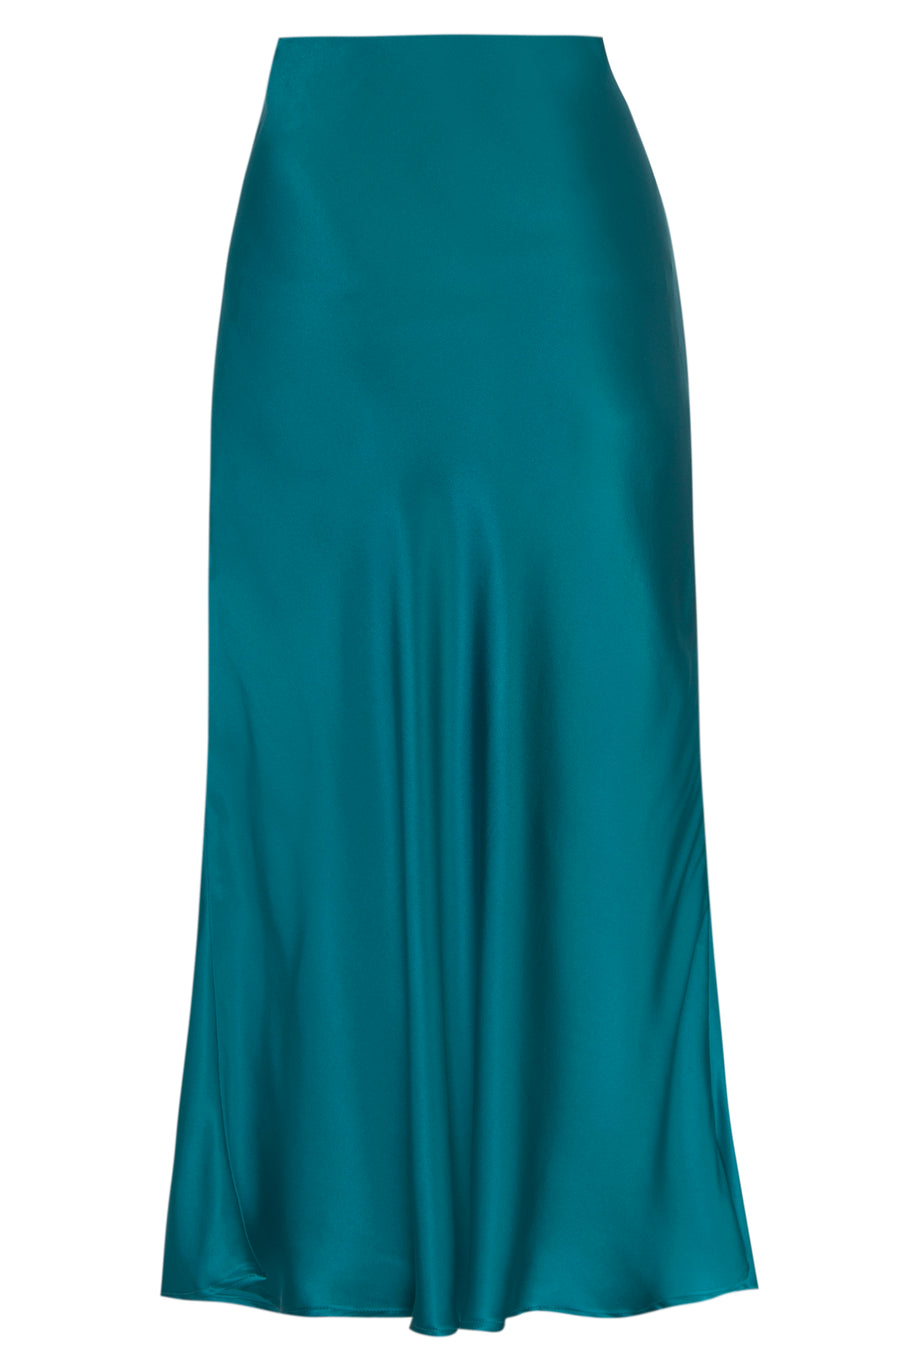 Silk Charmeuse 'Katie' Bias Skirt: Emerald